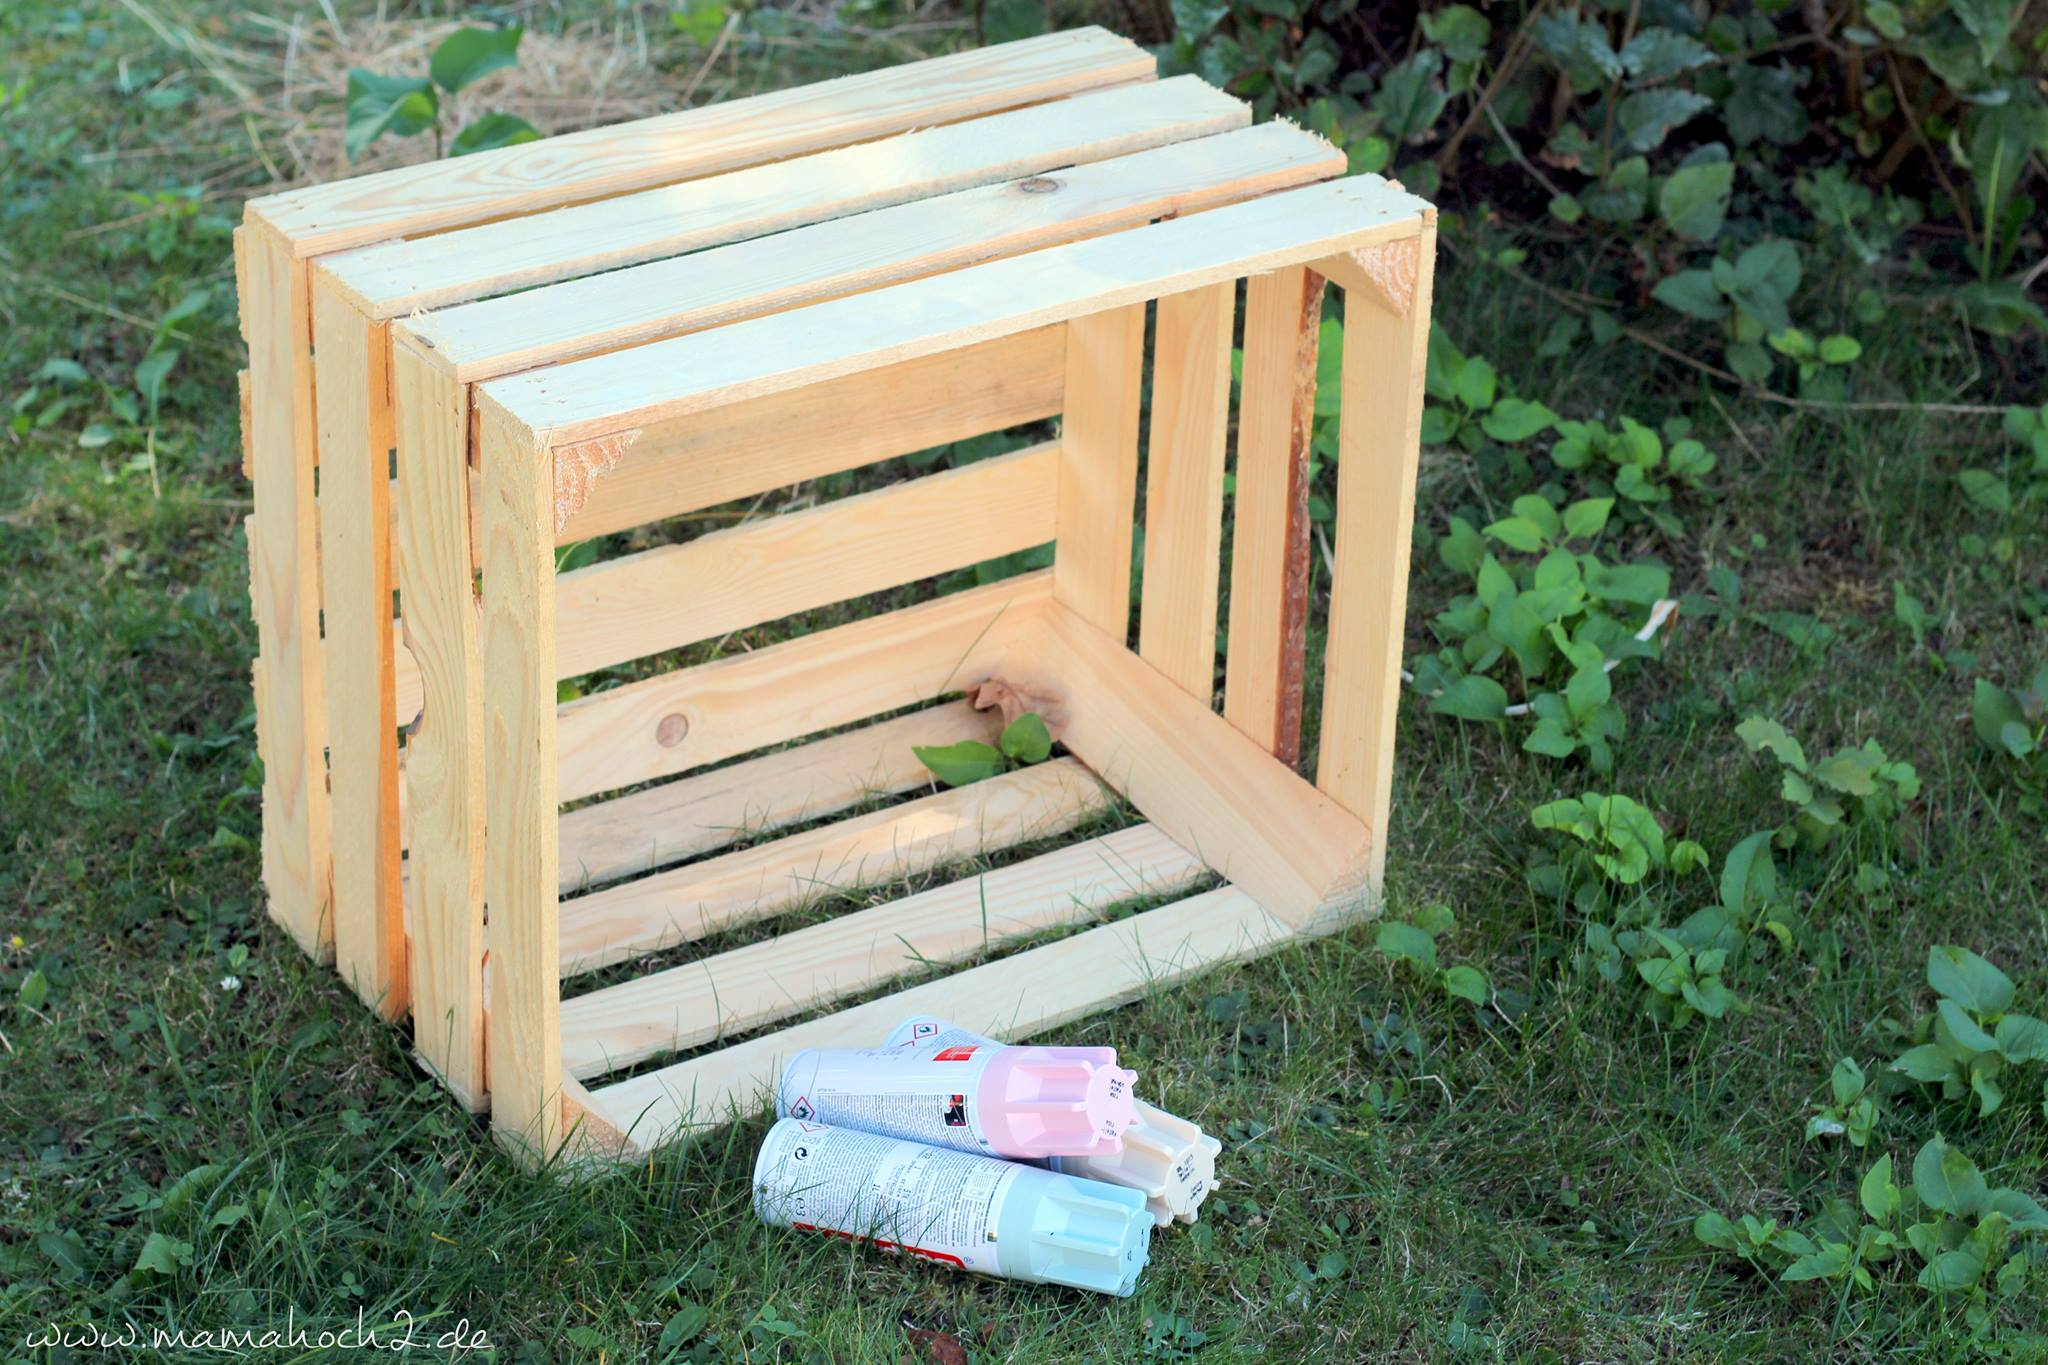 diy hochbeet kinder weinkisten obstkisten garten beet pflanzkiste 8 mamahoch2. Black Bedroom Furniture Sets. Home Design Ideas